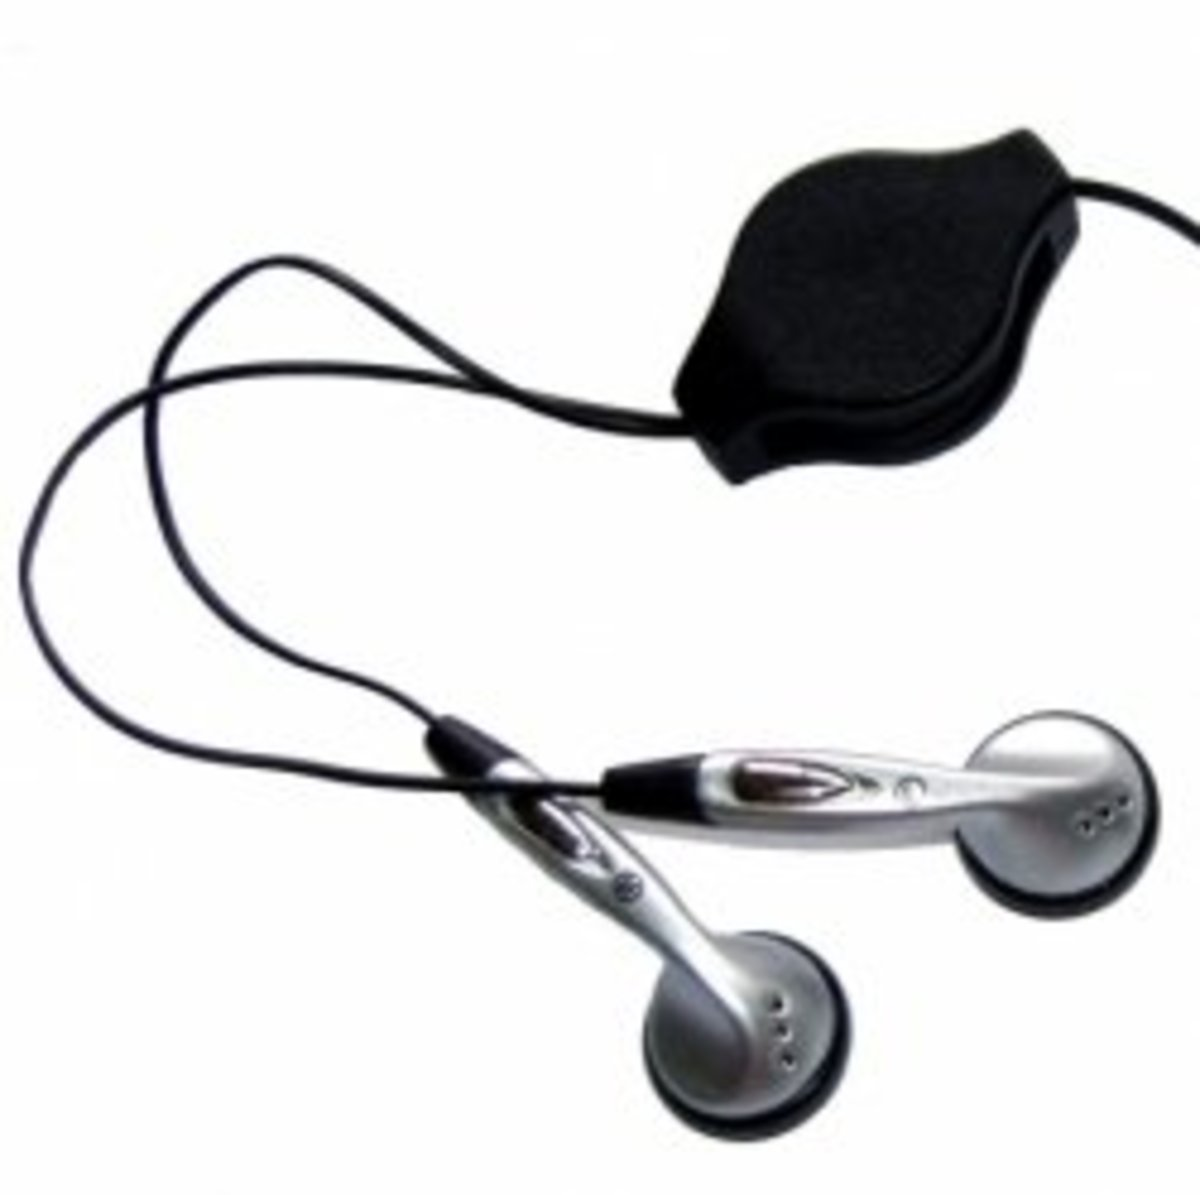 Stereo earbuds are everywhere. What about options for those of us who only have one ear that works?